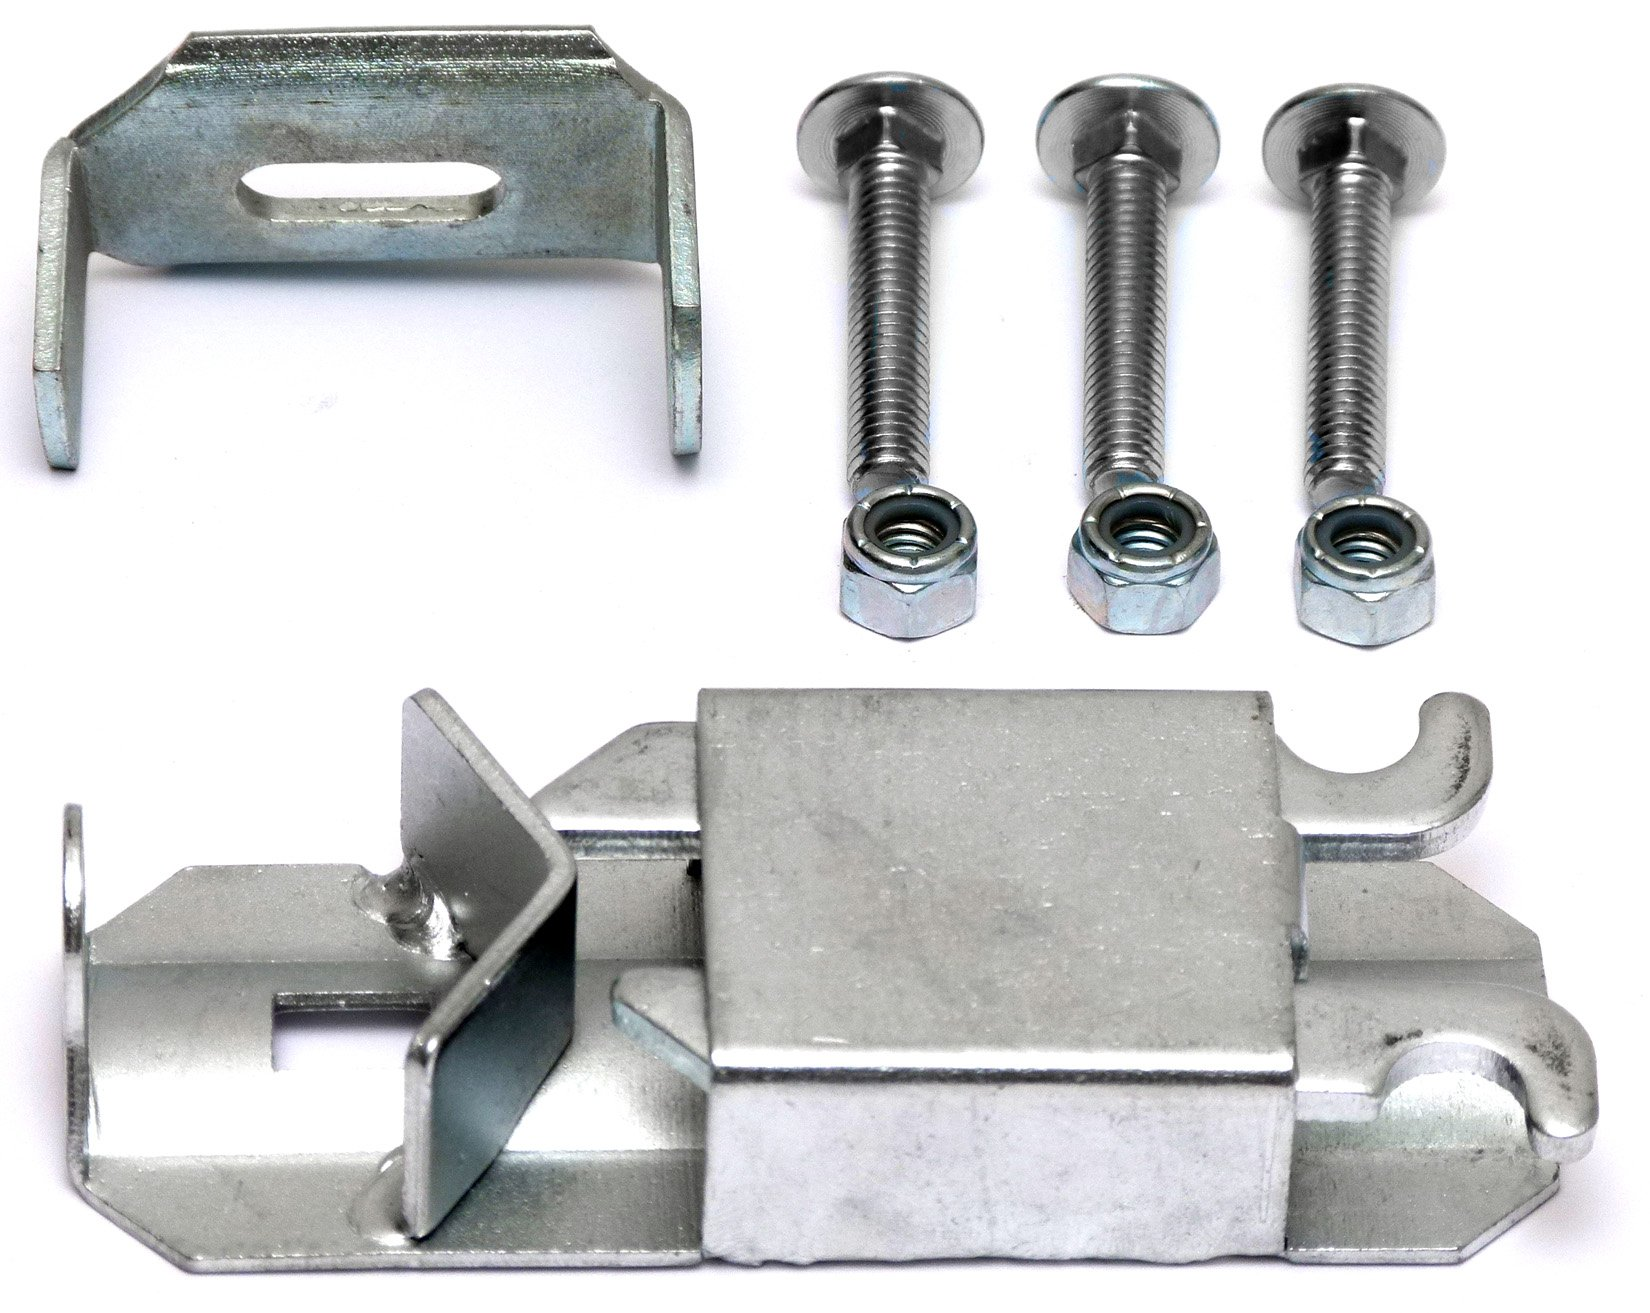 Behlen Country 38900128 Club Kennel Latch Kit